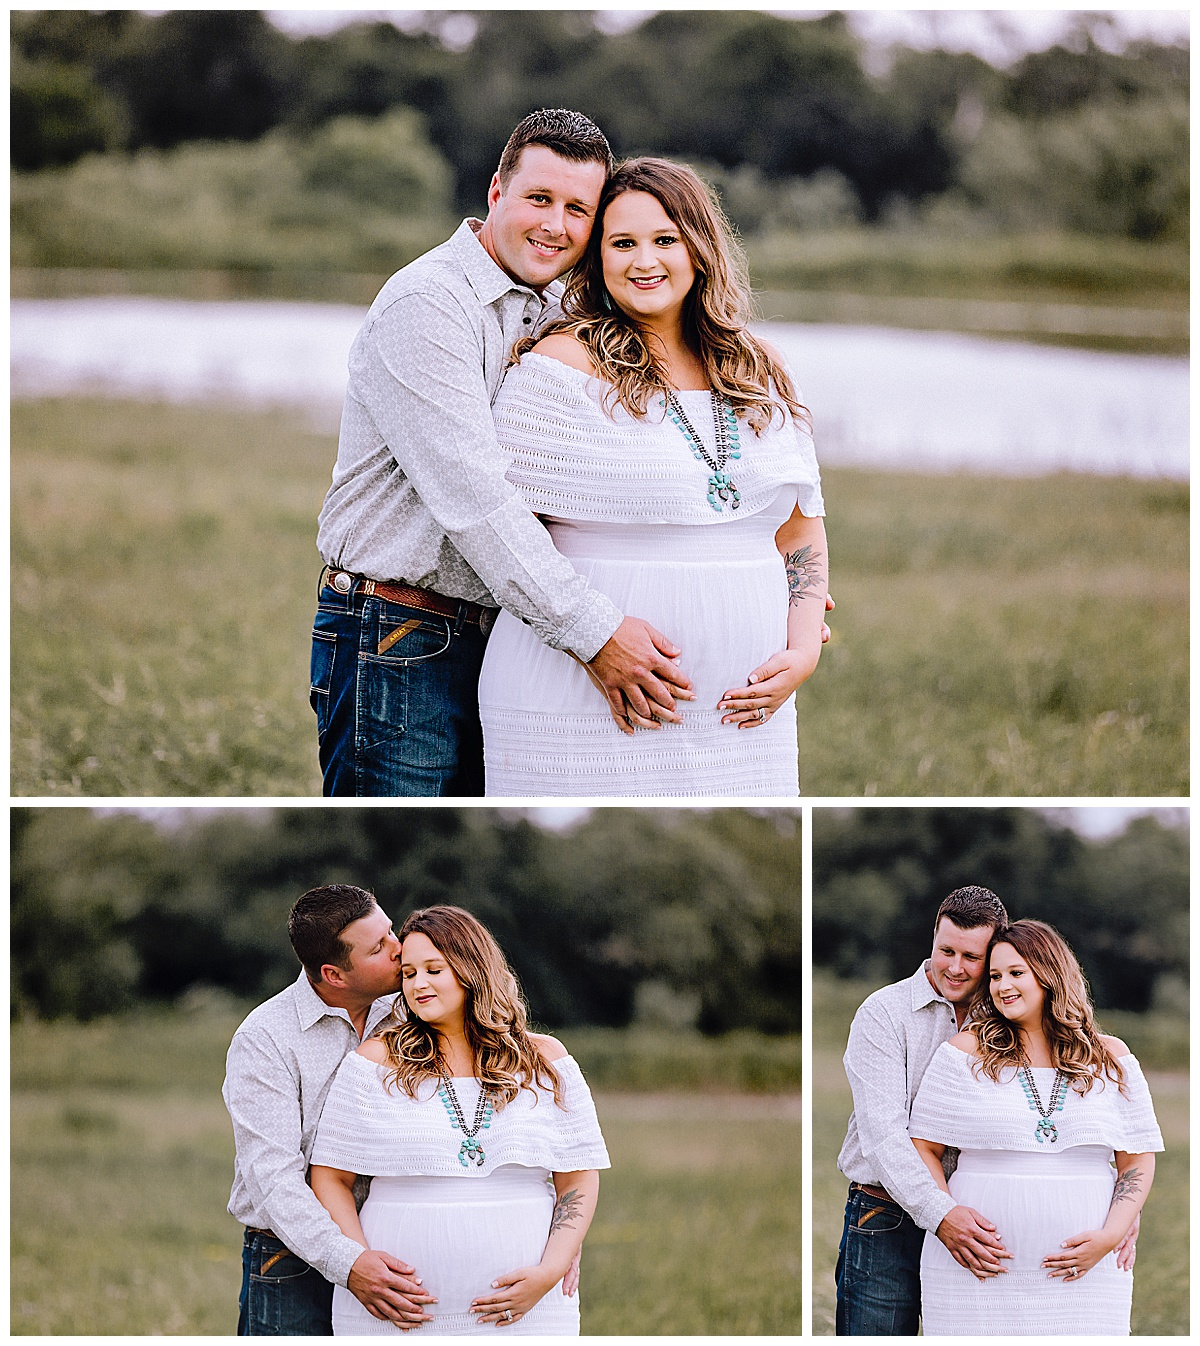 Rustic-Maternity-Session-Texas-Sunset-Carly-Barton-Photography_0071.jpg